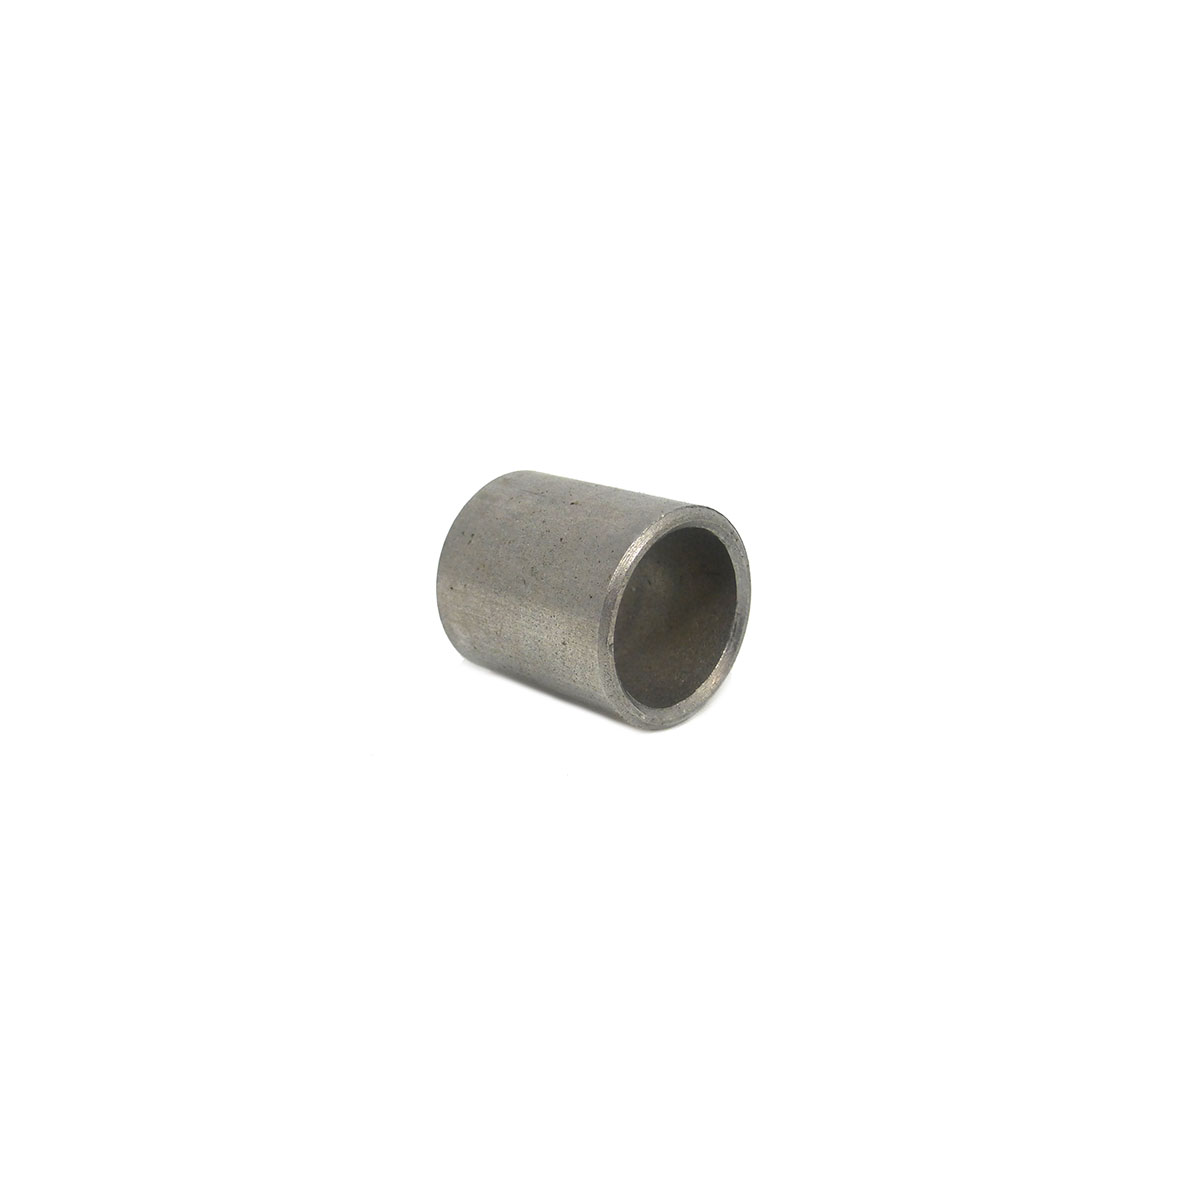 hight resolution of 300571 dixie chopper pulley bushing f part 30224